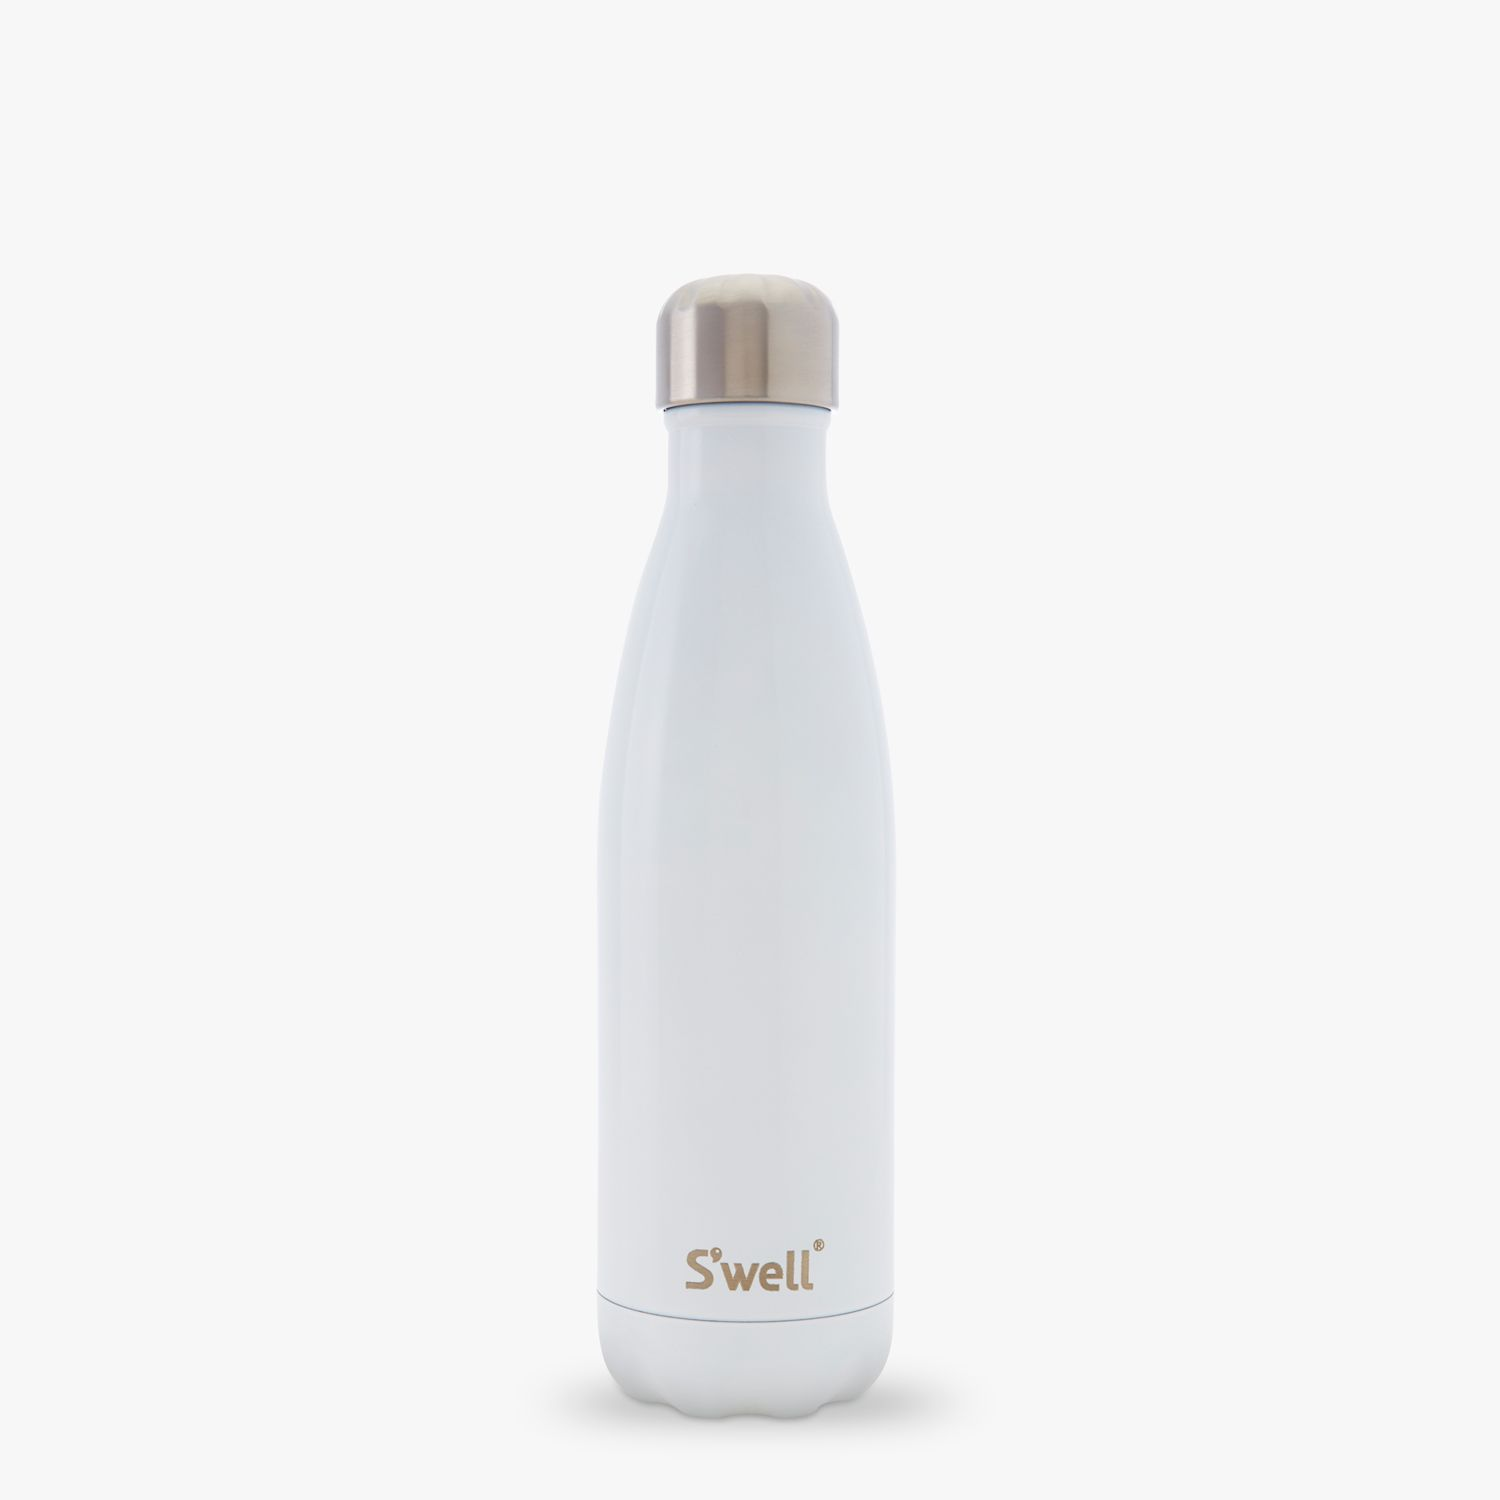 Angel Food Insulated Stainless Steel Water Bottle S Well Swell Water Bottle Stylish Water Bottles Best Reusable Water Bottle